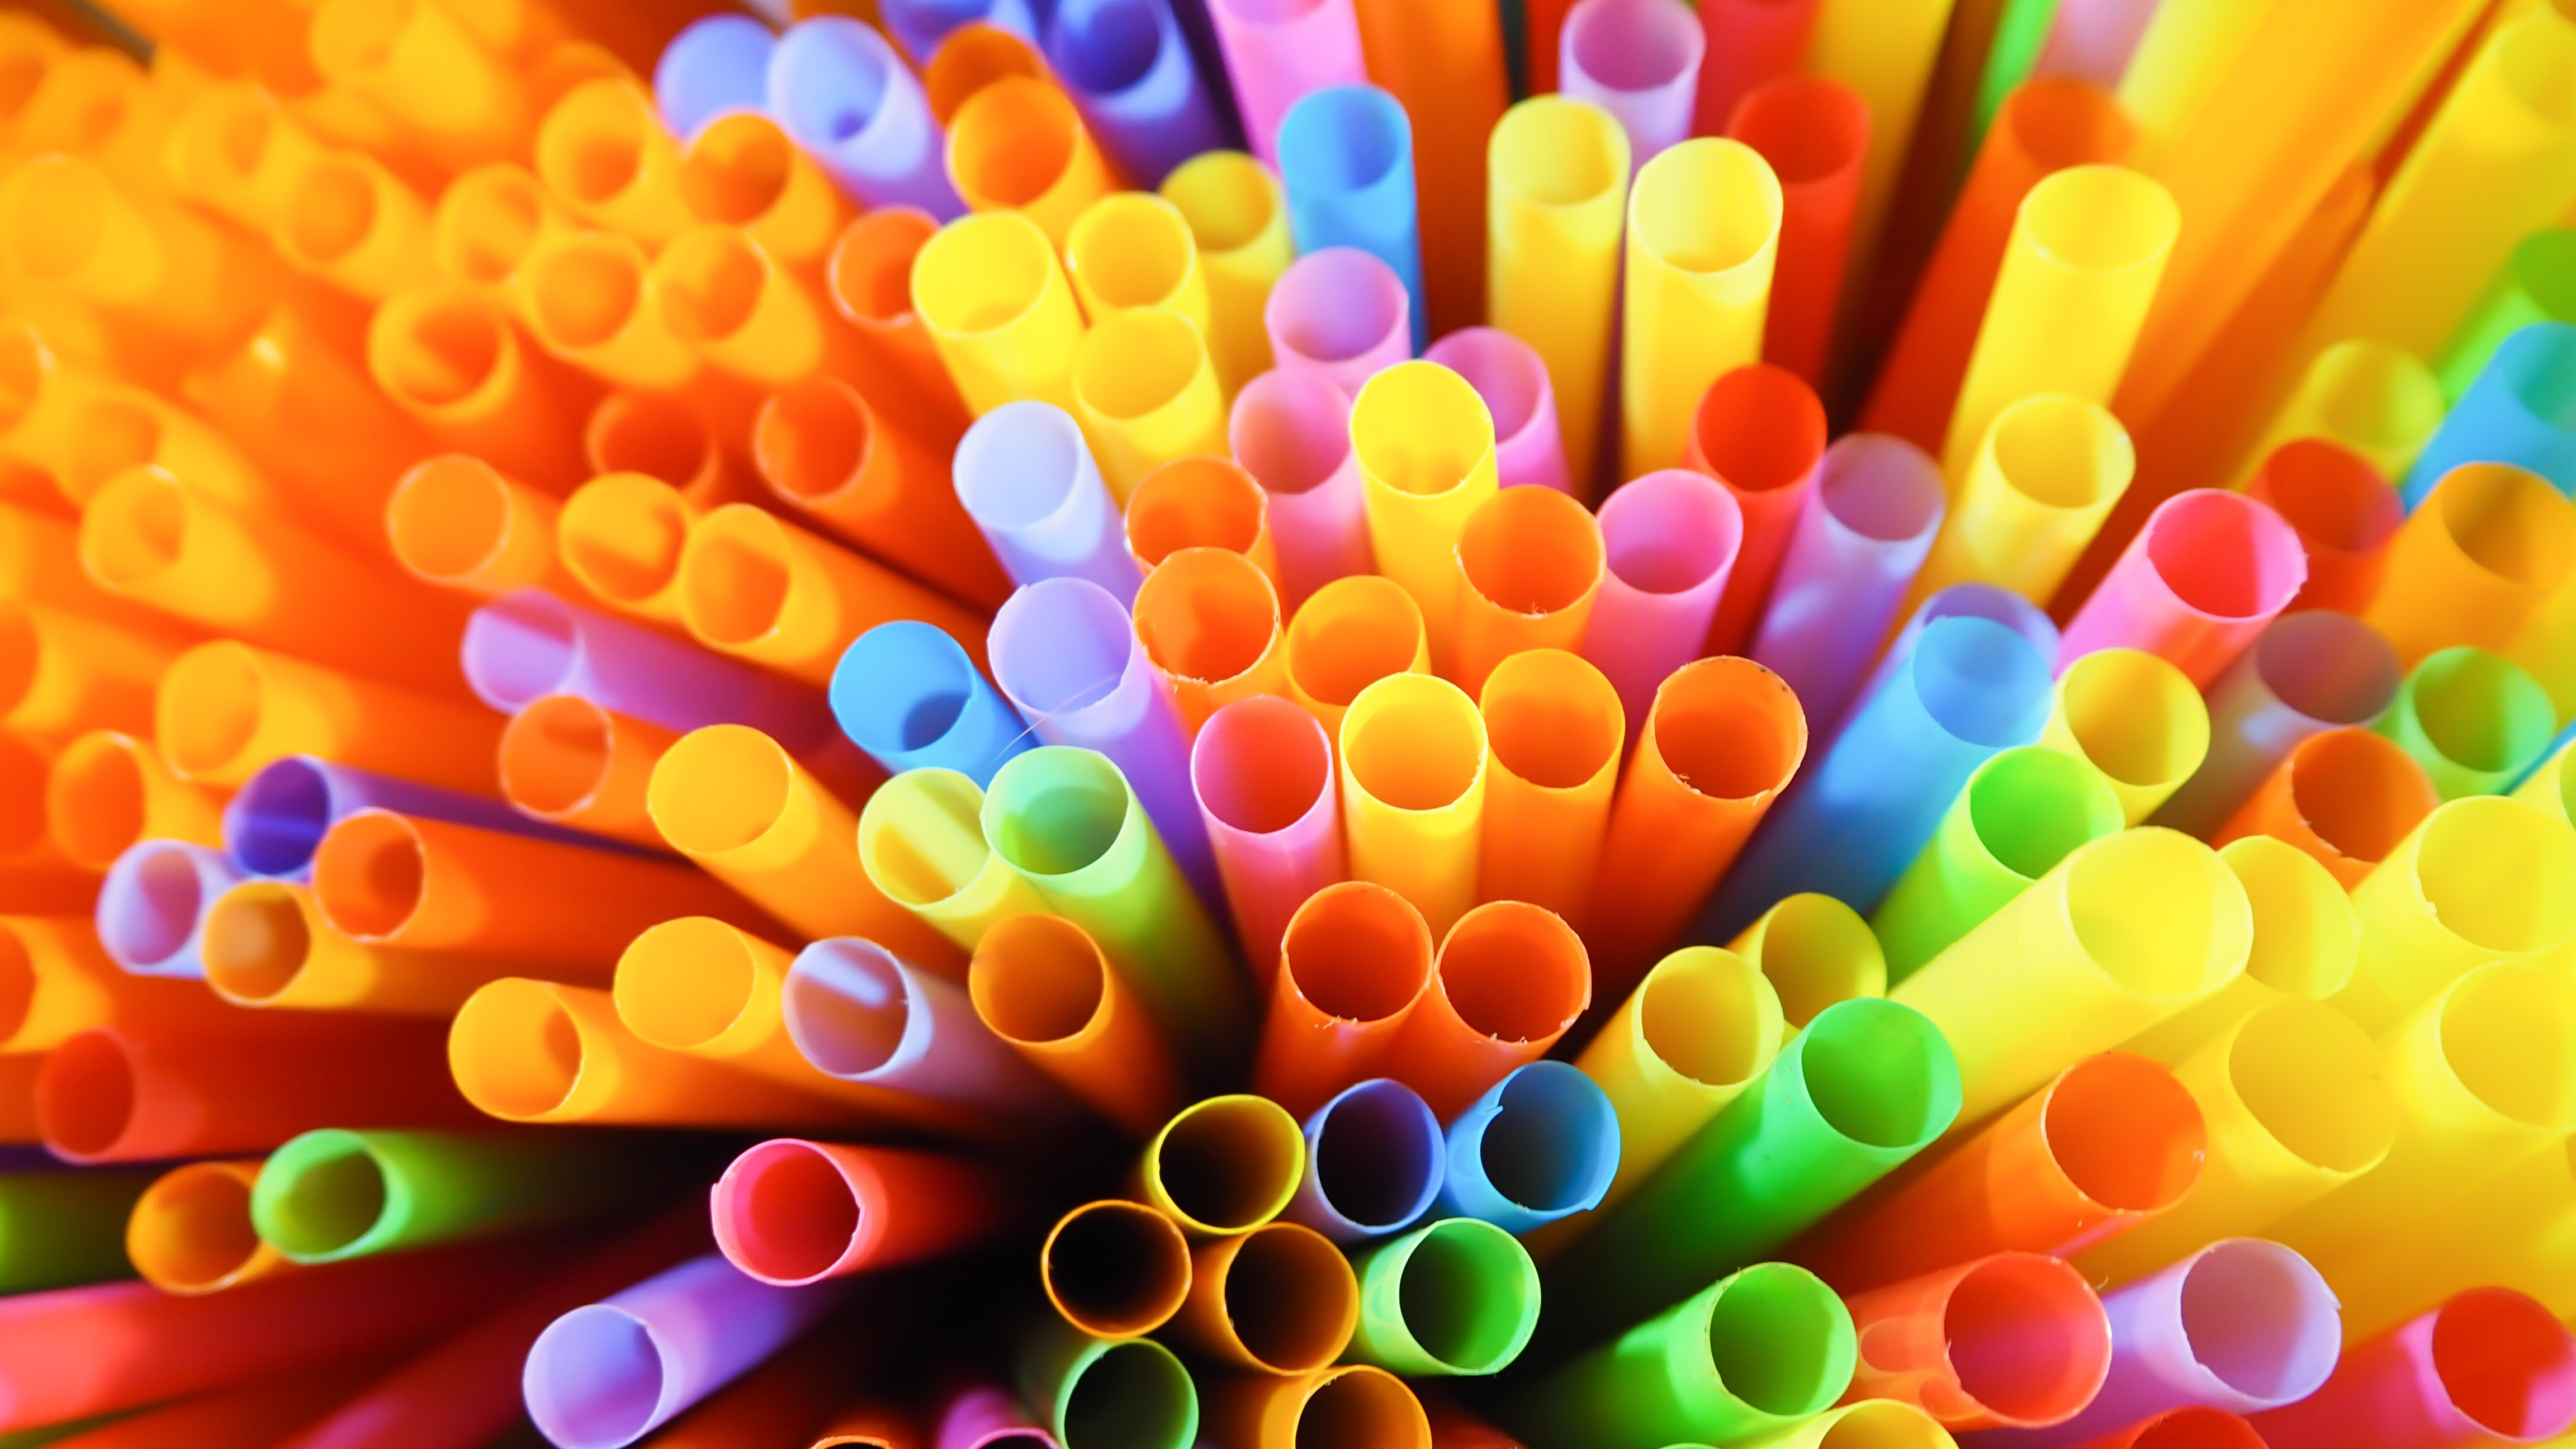 European Union 'one step ahead' of Michael Gove on plastic straw ban